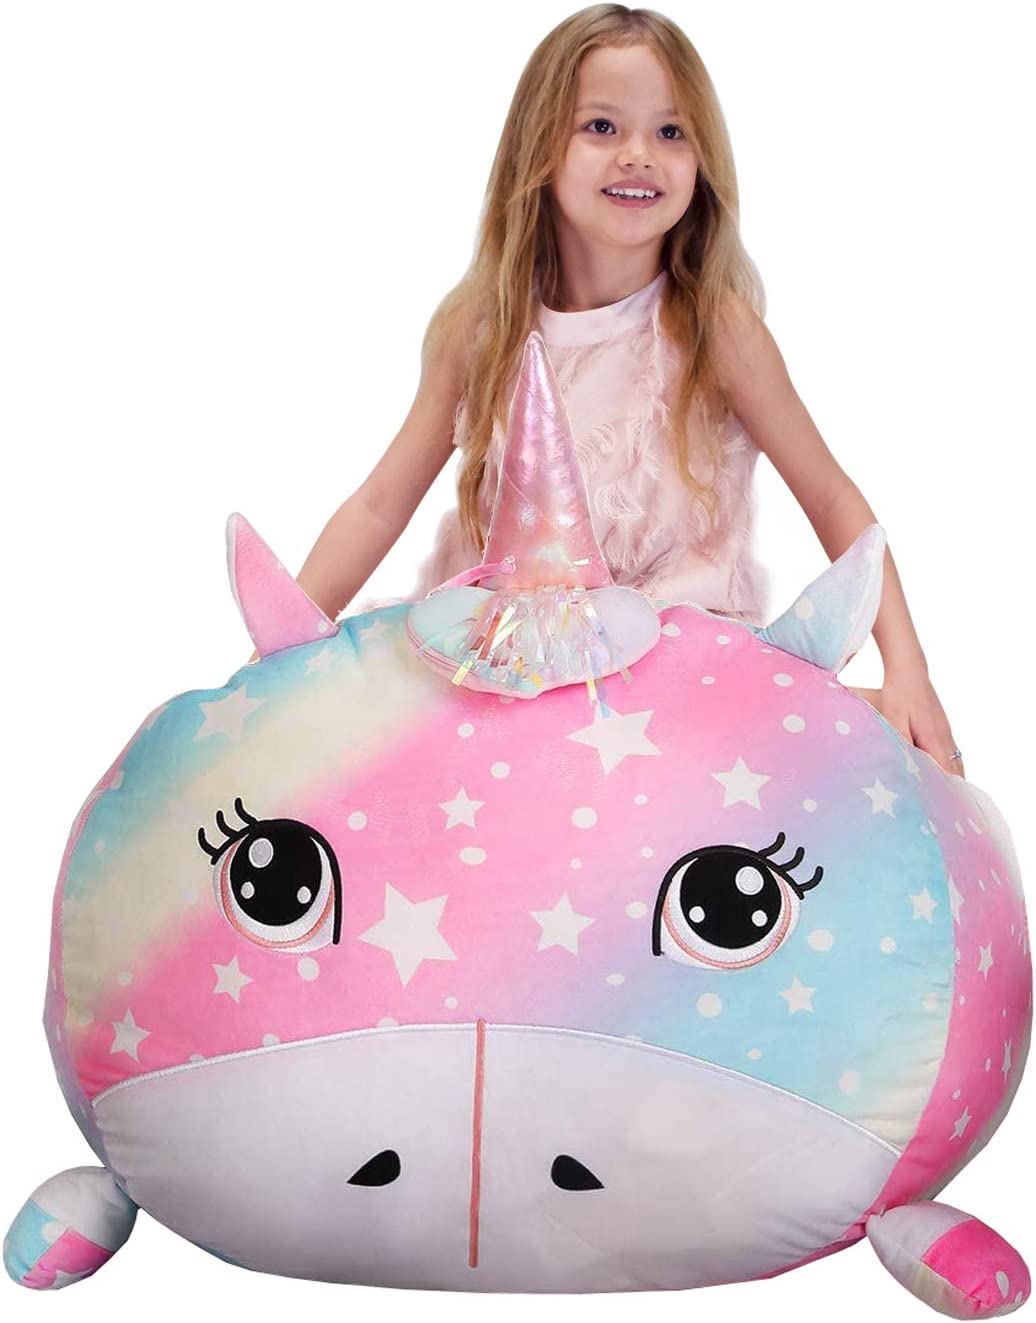 Youngeyee Stuffed Animal Storage, Kids Chairs, Unicorn Bean Bag Chair for Girls, Teen Girl Room Decor, Size 28x22 Inch, Velvet Extra Soft, Cover Only